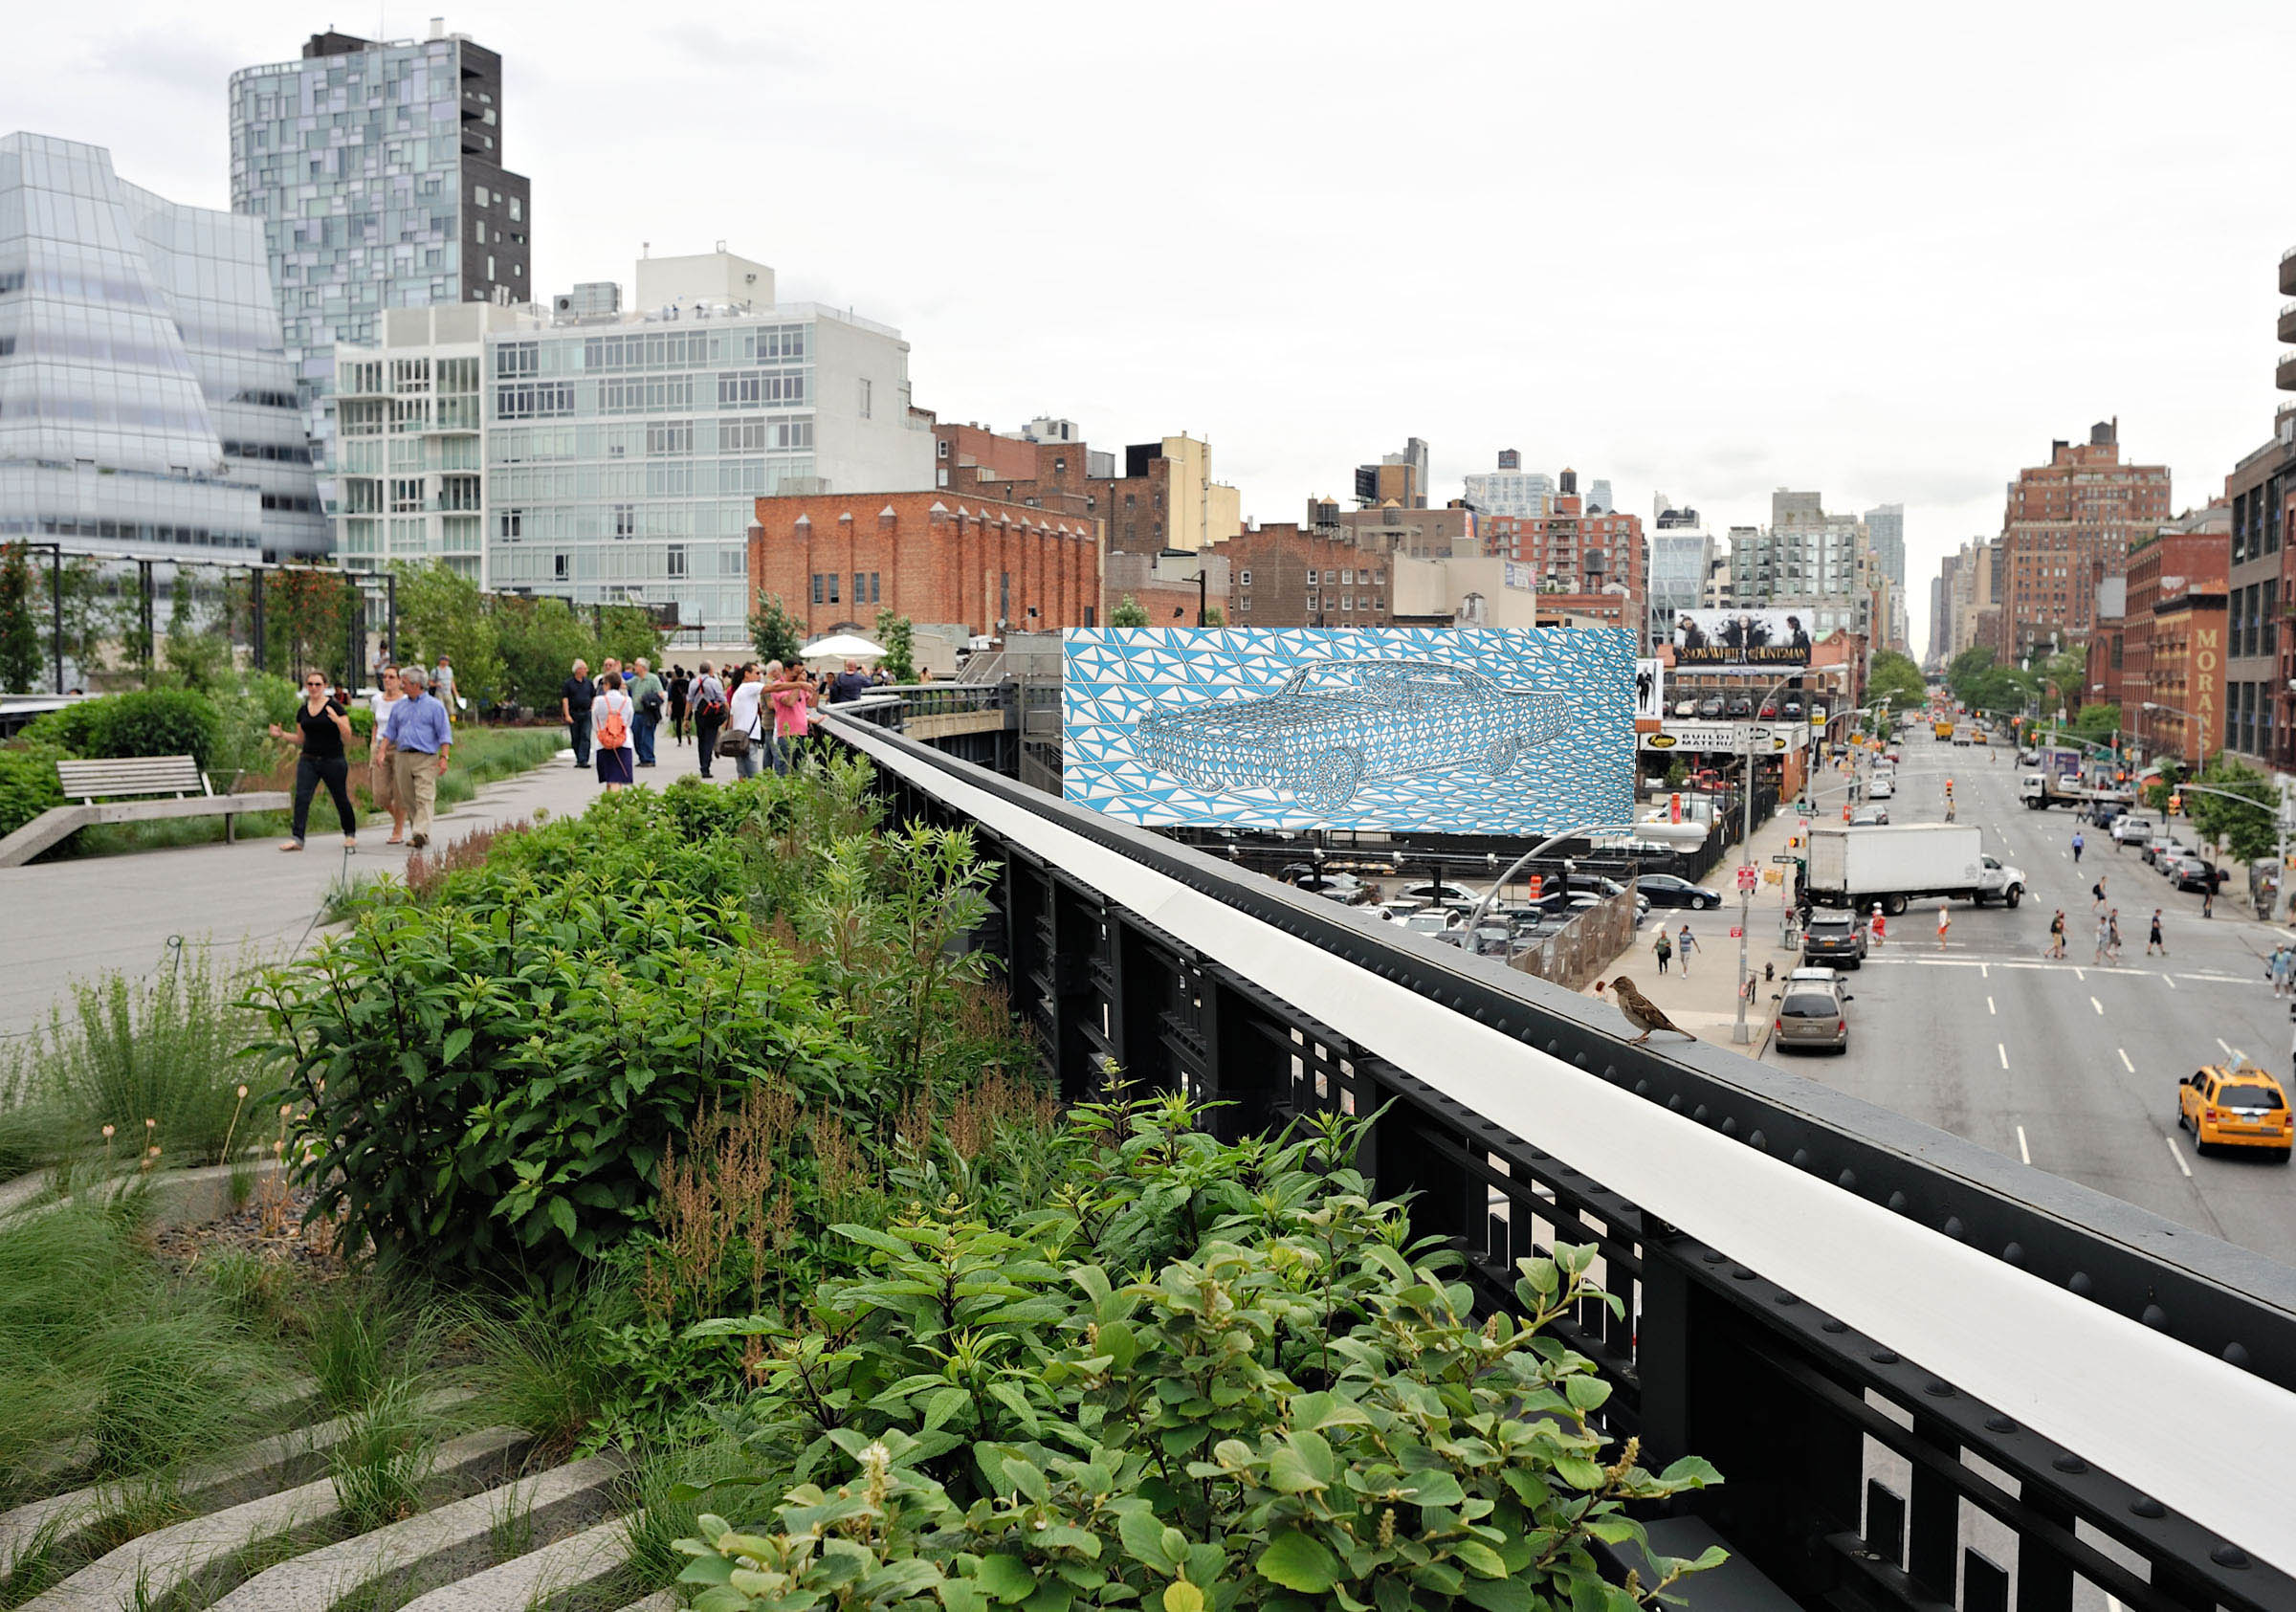 highline case study Highline park phase 2 location: new york, ny nyc economic development corp / friends of the highline parks & recreation case studies.